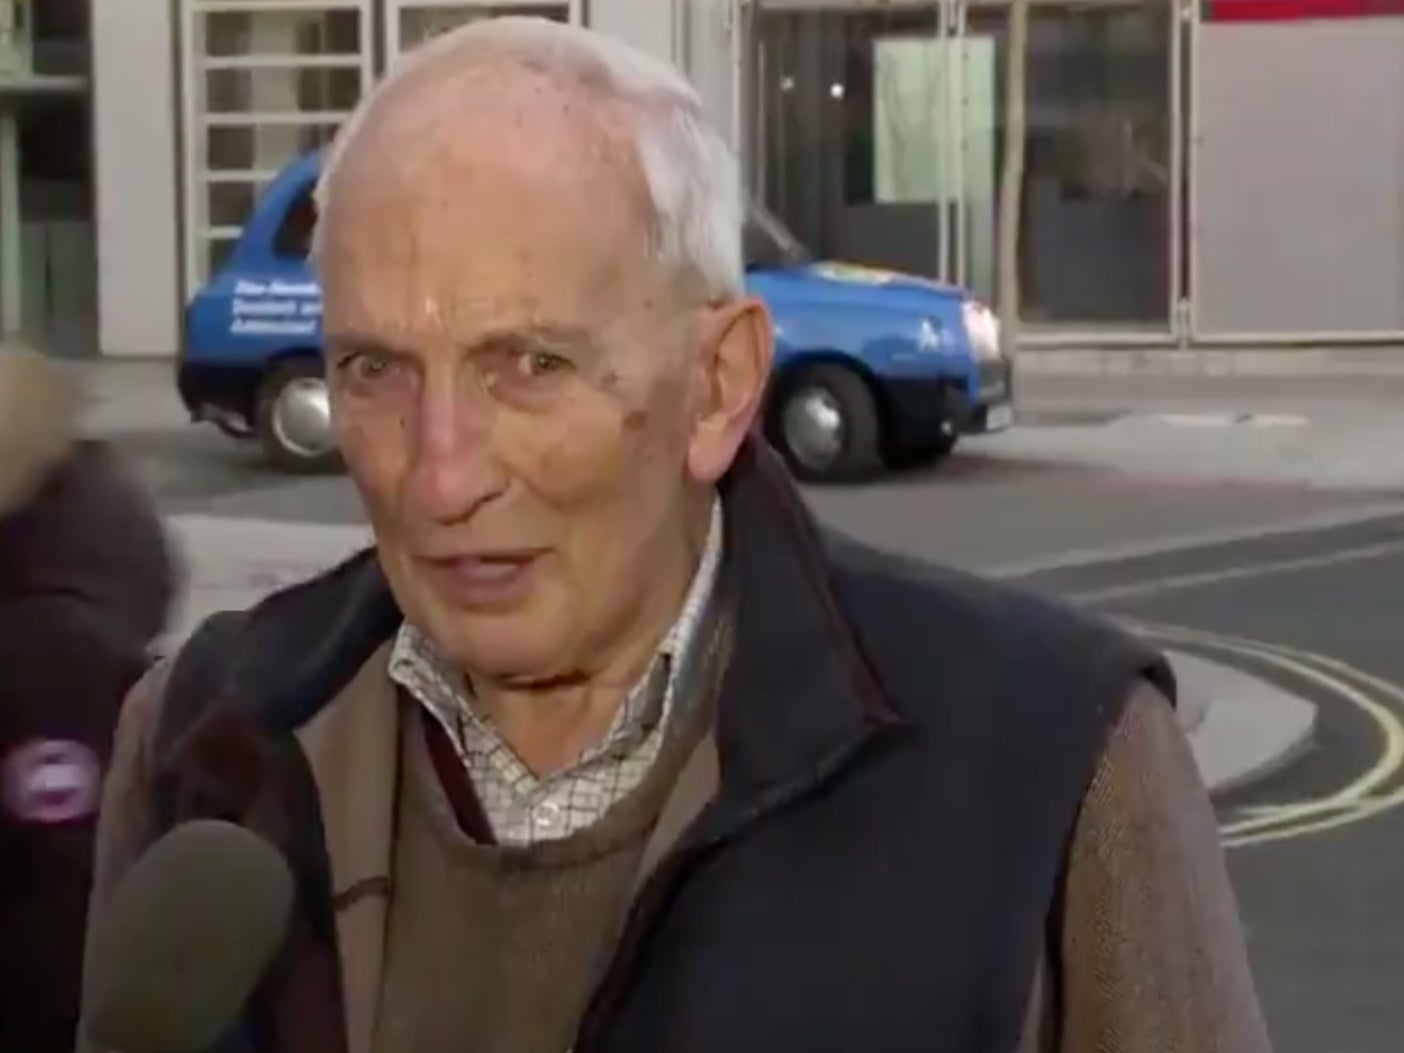 Vaccinated 91-year-old's interview with CNN goes viral